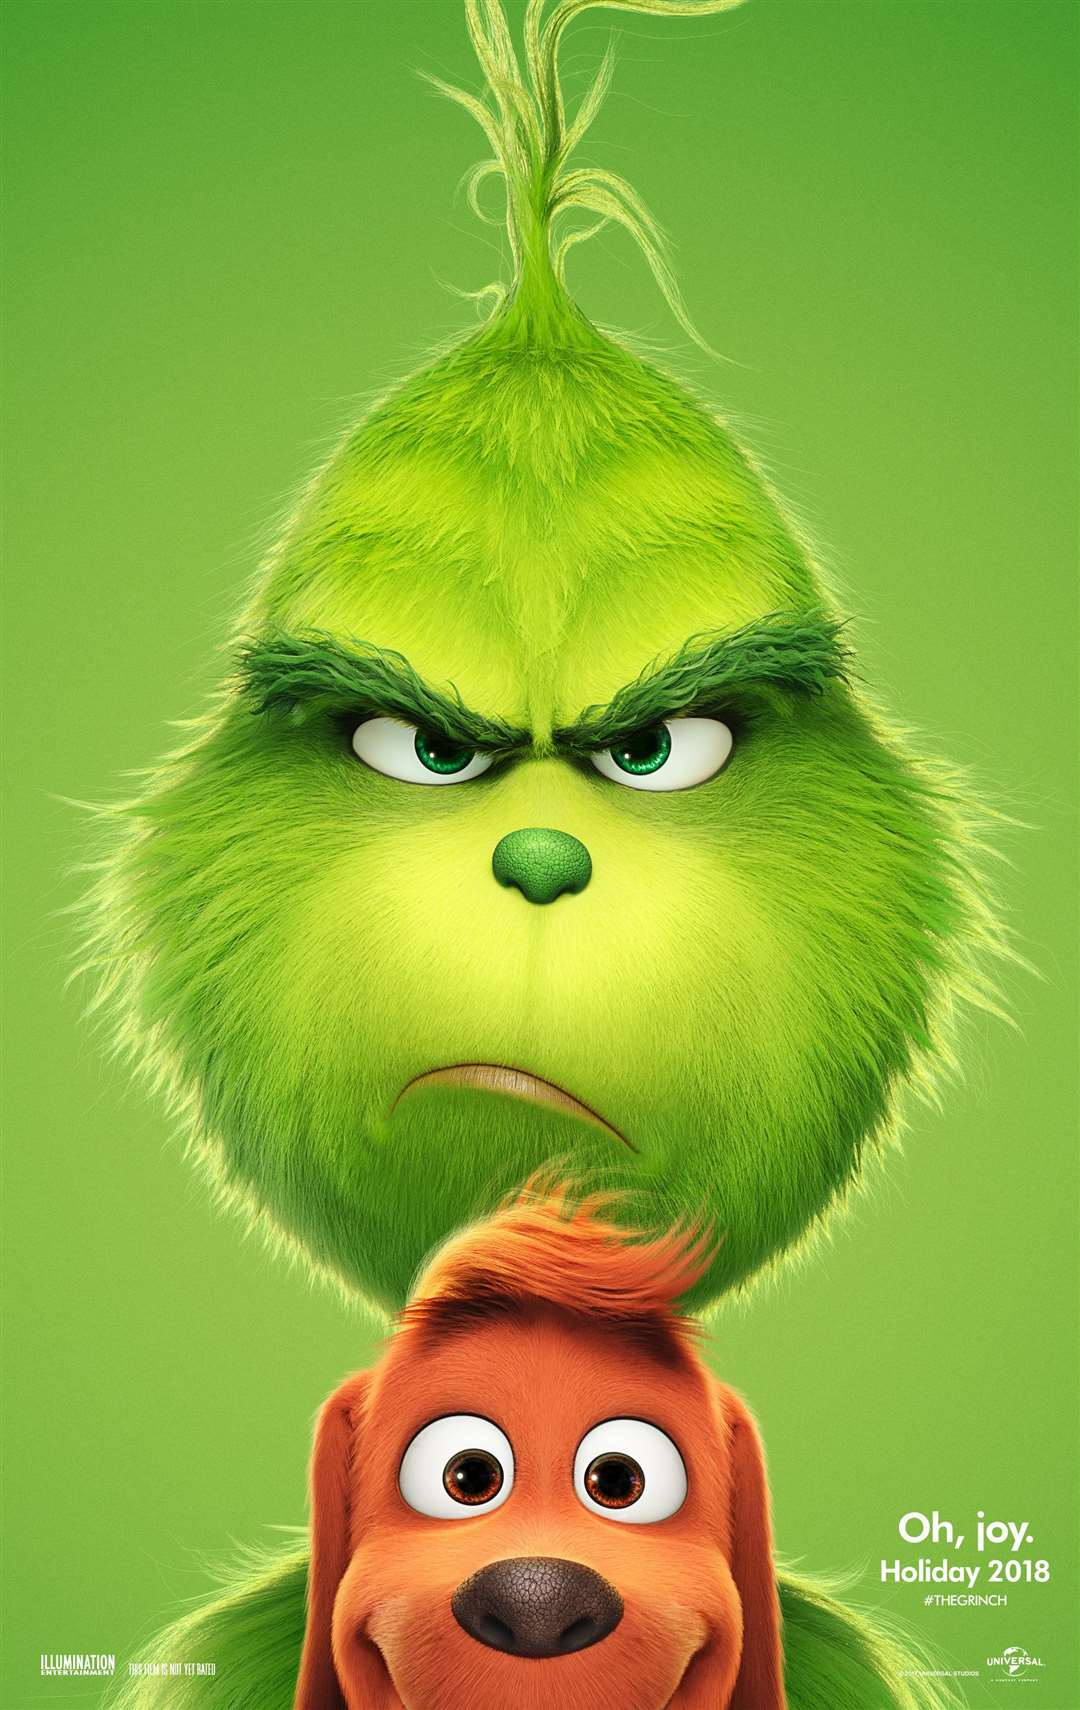 THE GRINCH (4990955)